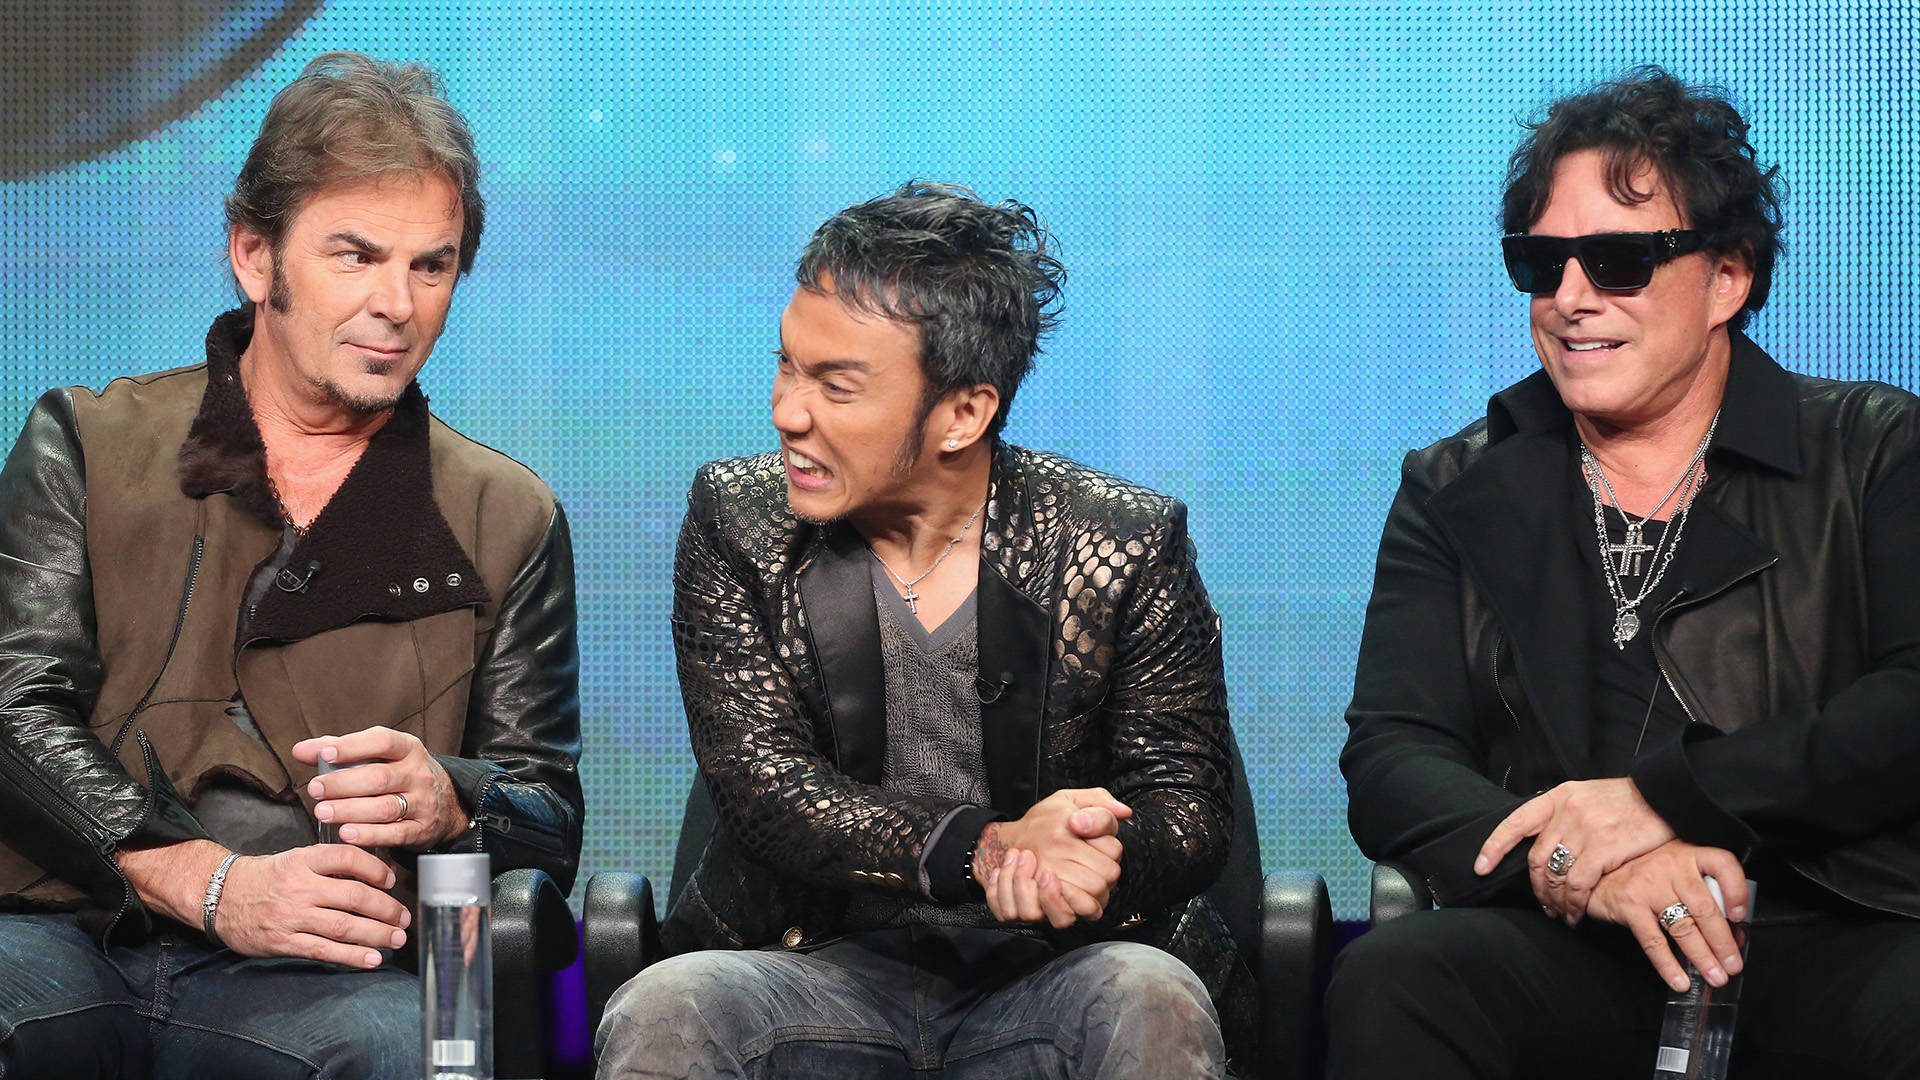 """(L-R) Keyboardist Jonathan Cain, lead vocalist Arnel Pineda and guitarist Neal Schon speak onstage during the """"Don't Stop Believin': Everyman's Journey"""" panel at the PBS portion of the 2013 Summer Television Critics Association tour at the Beverly Hilton Hotel on August 6, 2013 in Beverly Hills, California."""